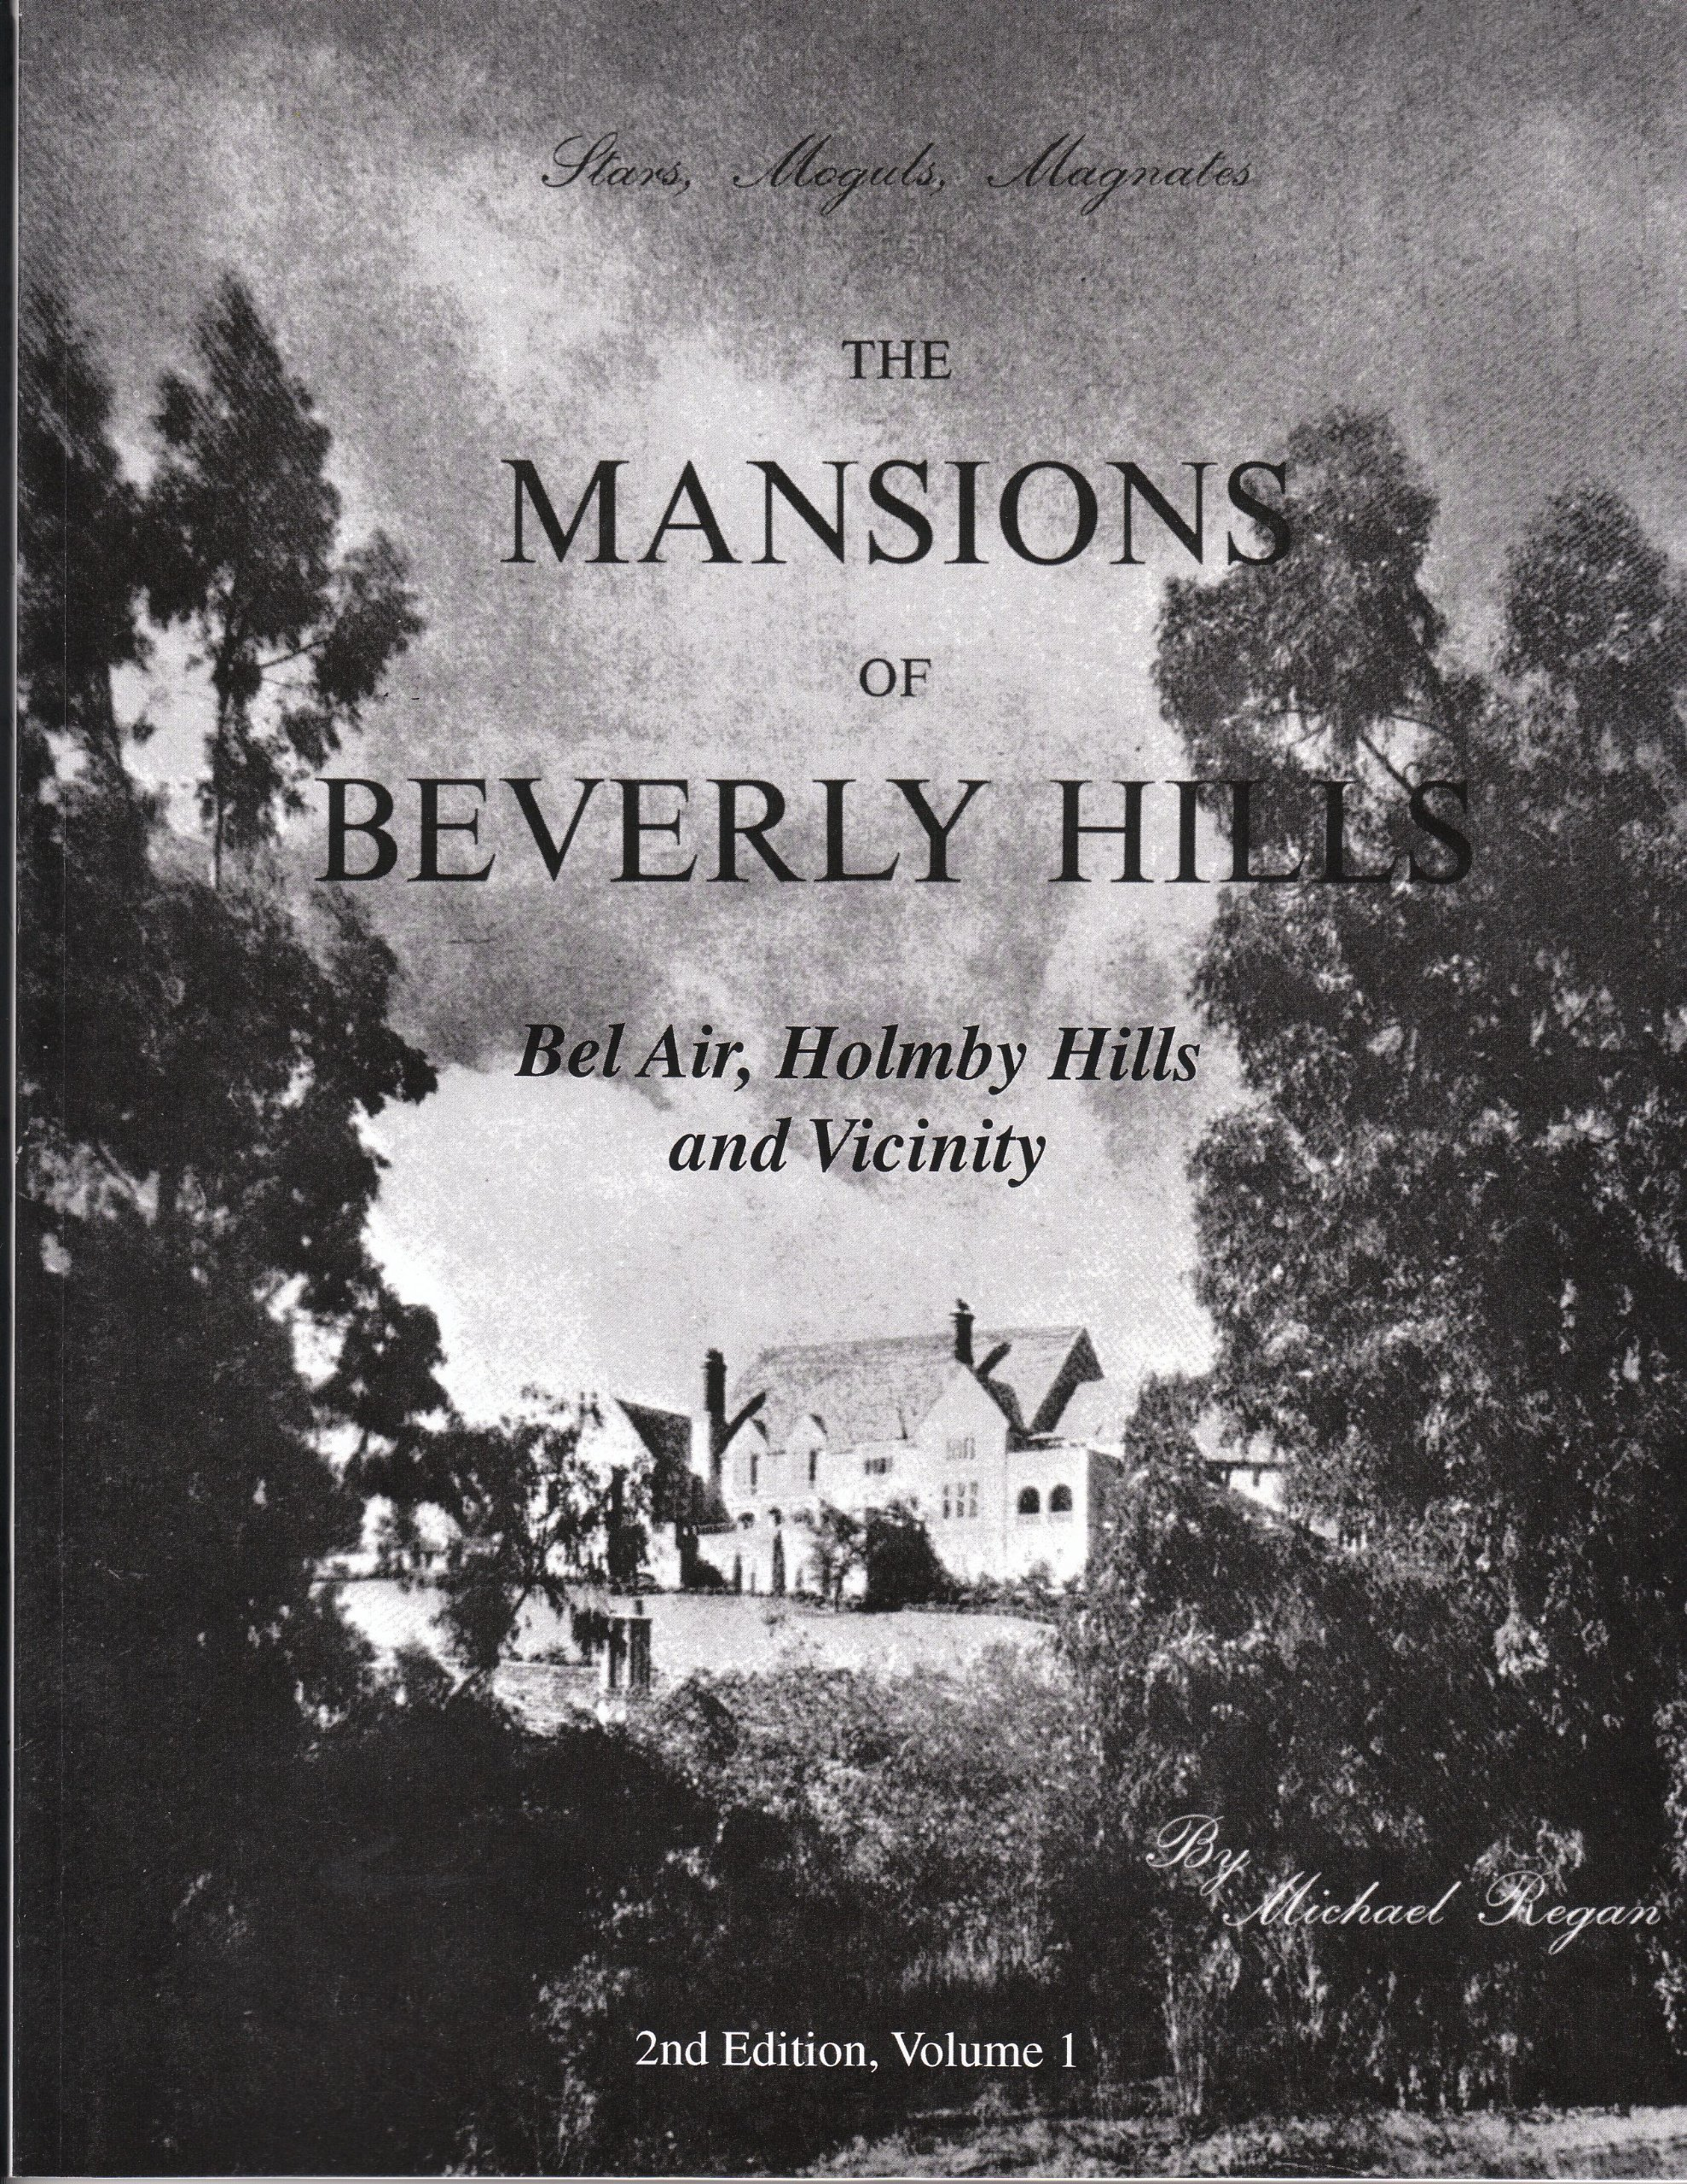 Read Online Stars, Moguls, Magnates - The Mansions of Beverly Hills: Bel Air, Holmby Hills and Vicinity (2nd Edition, Volume 1) PDF